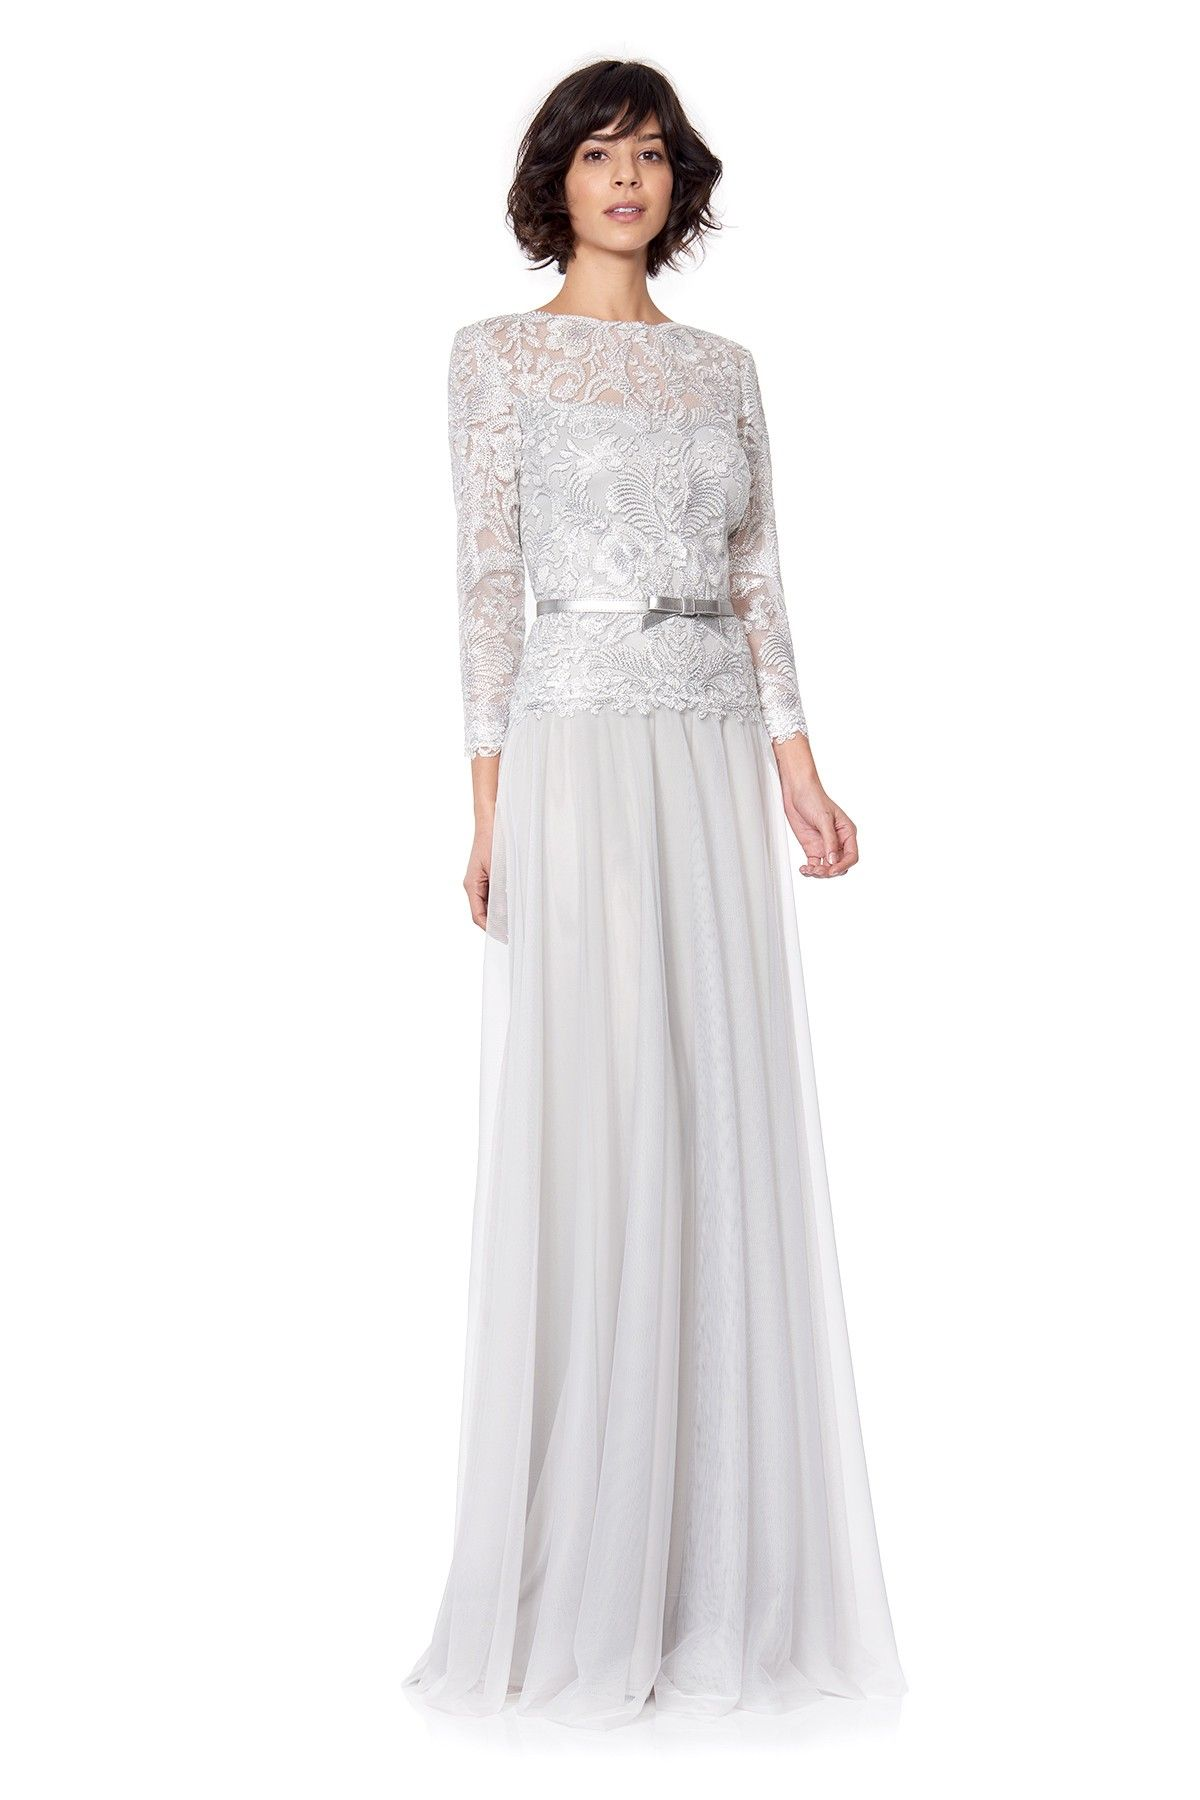 Corded Embroidery on Tulle 3/4 Sleeve Tulle Gown | Tadashi Shoji ...